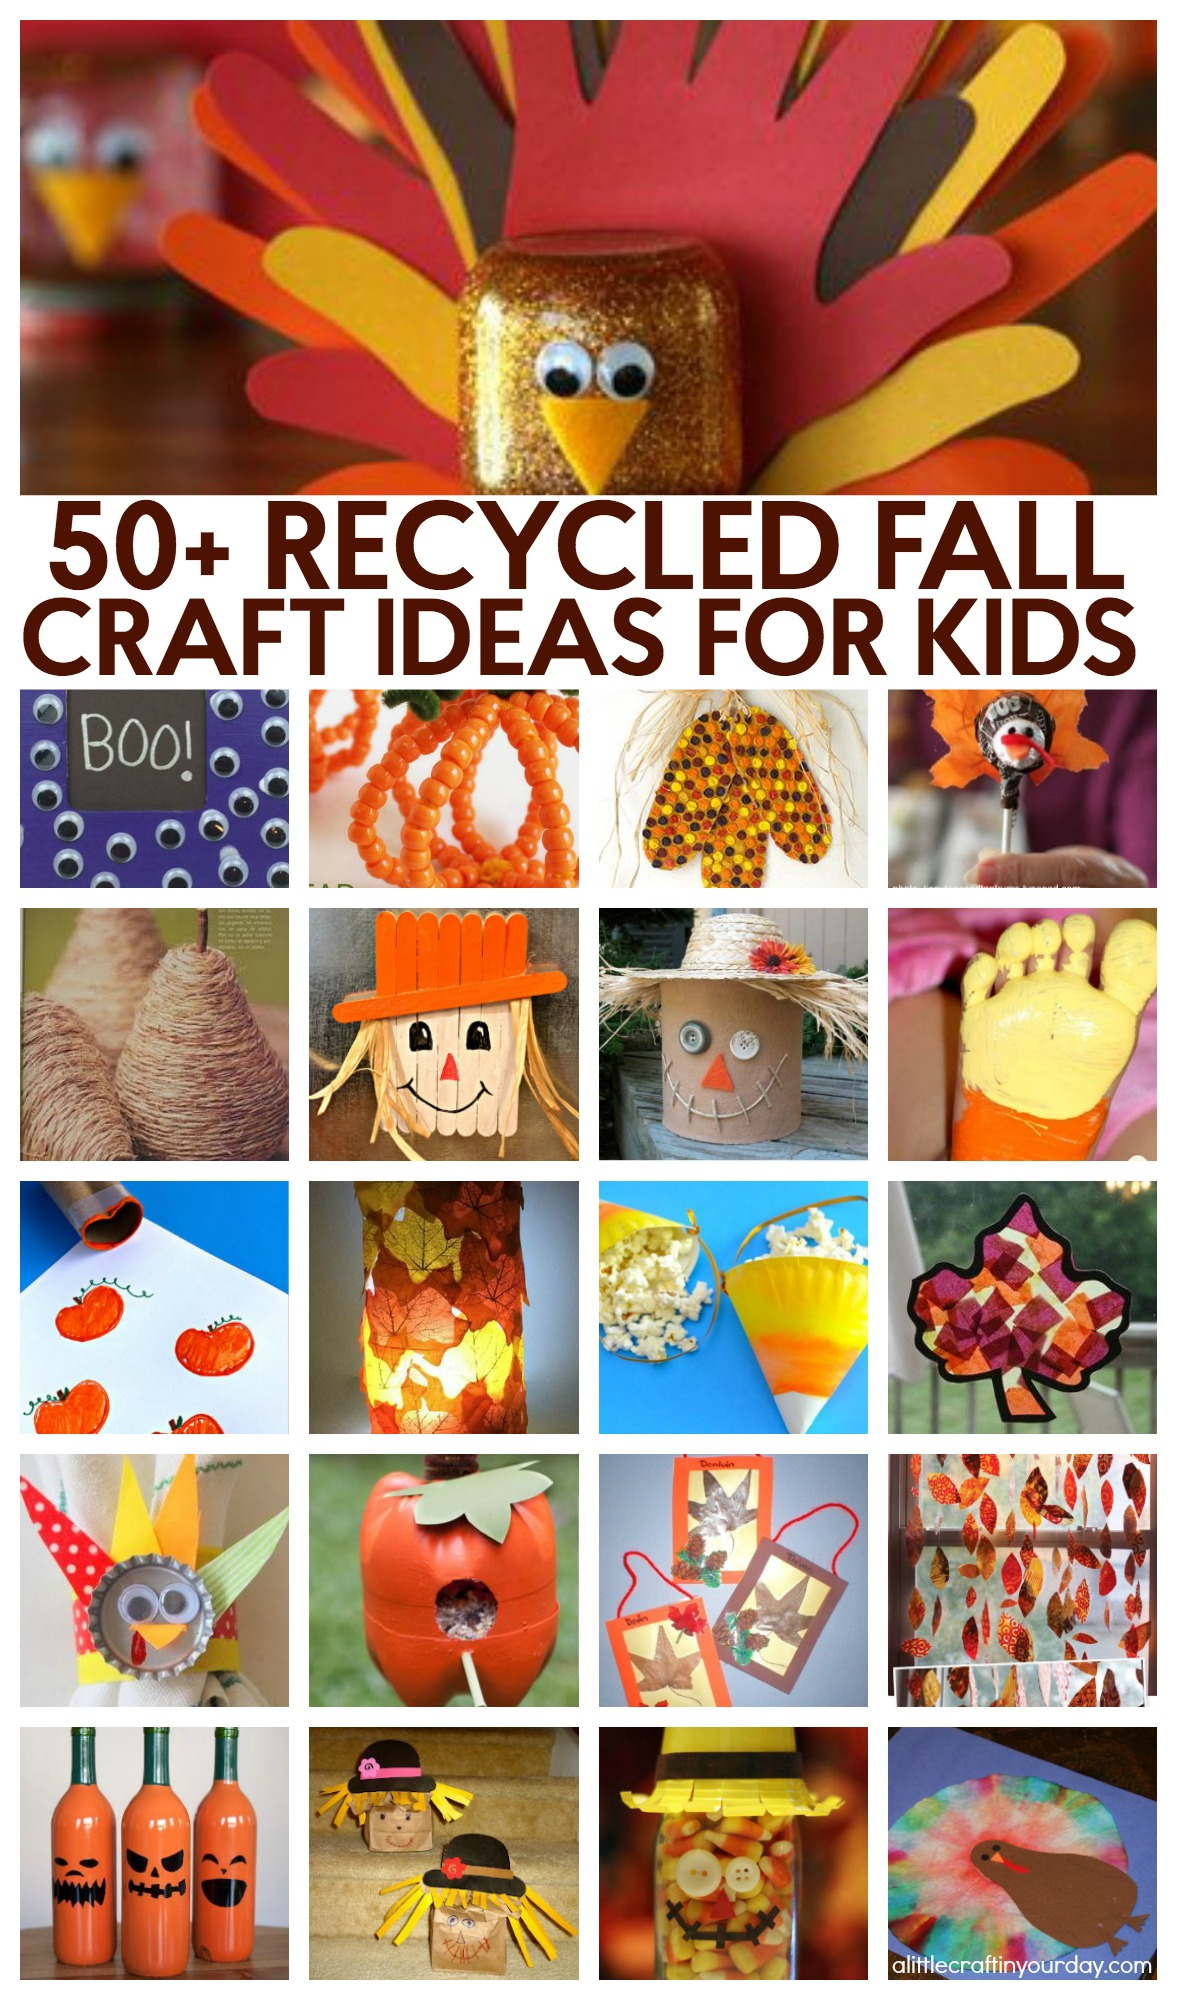 51 Recycled Fall Kids Crafts